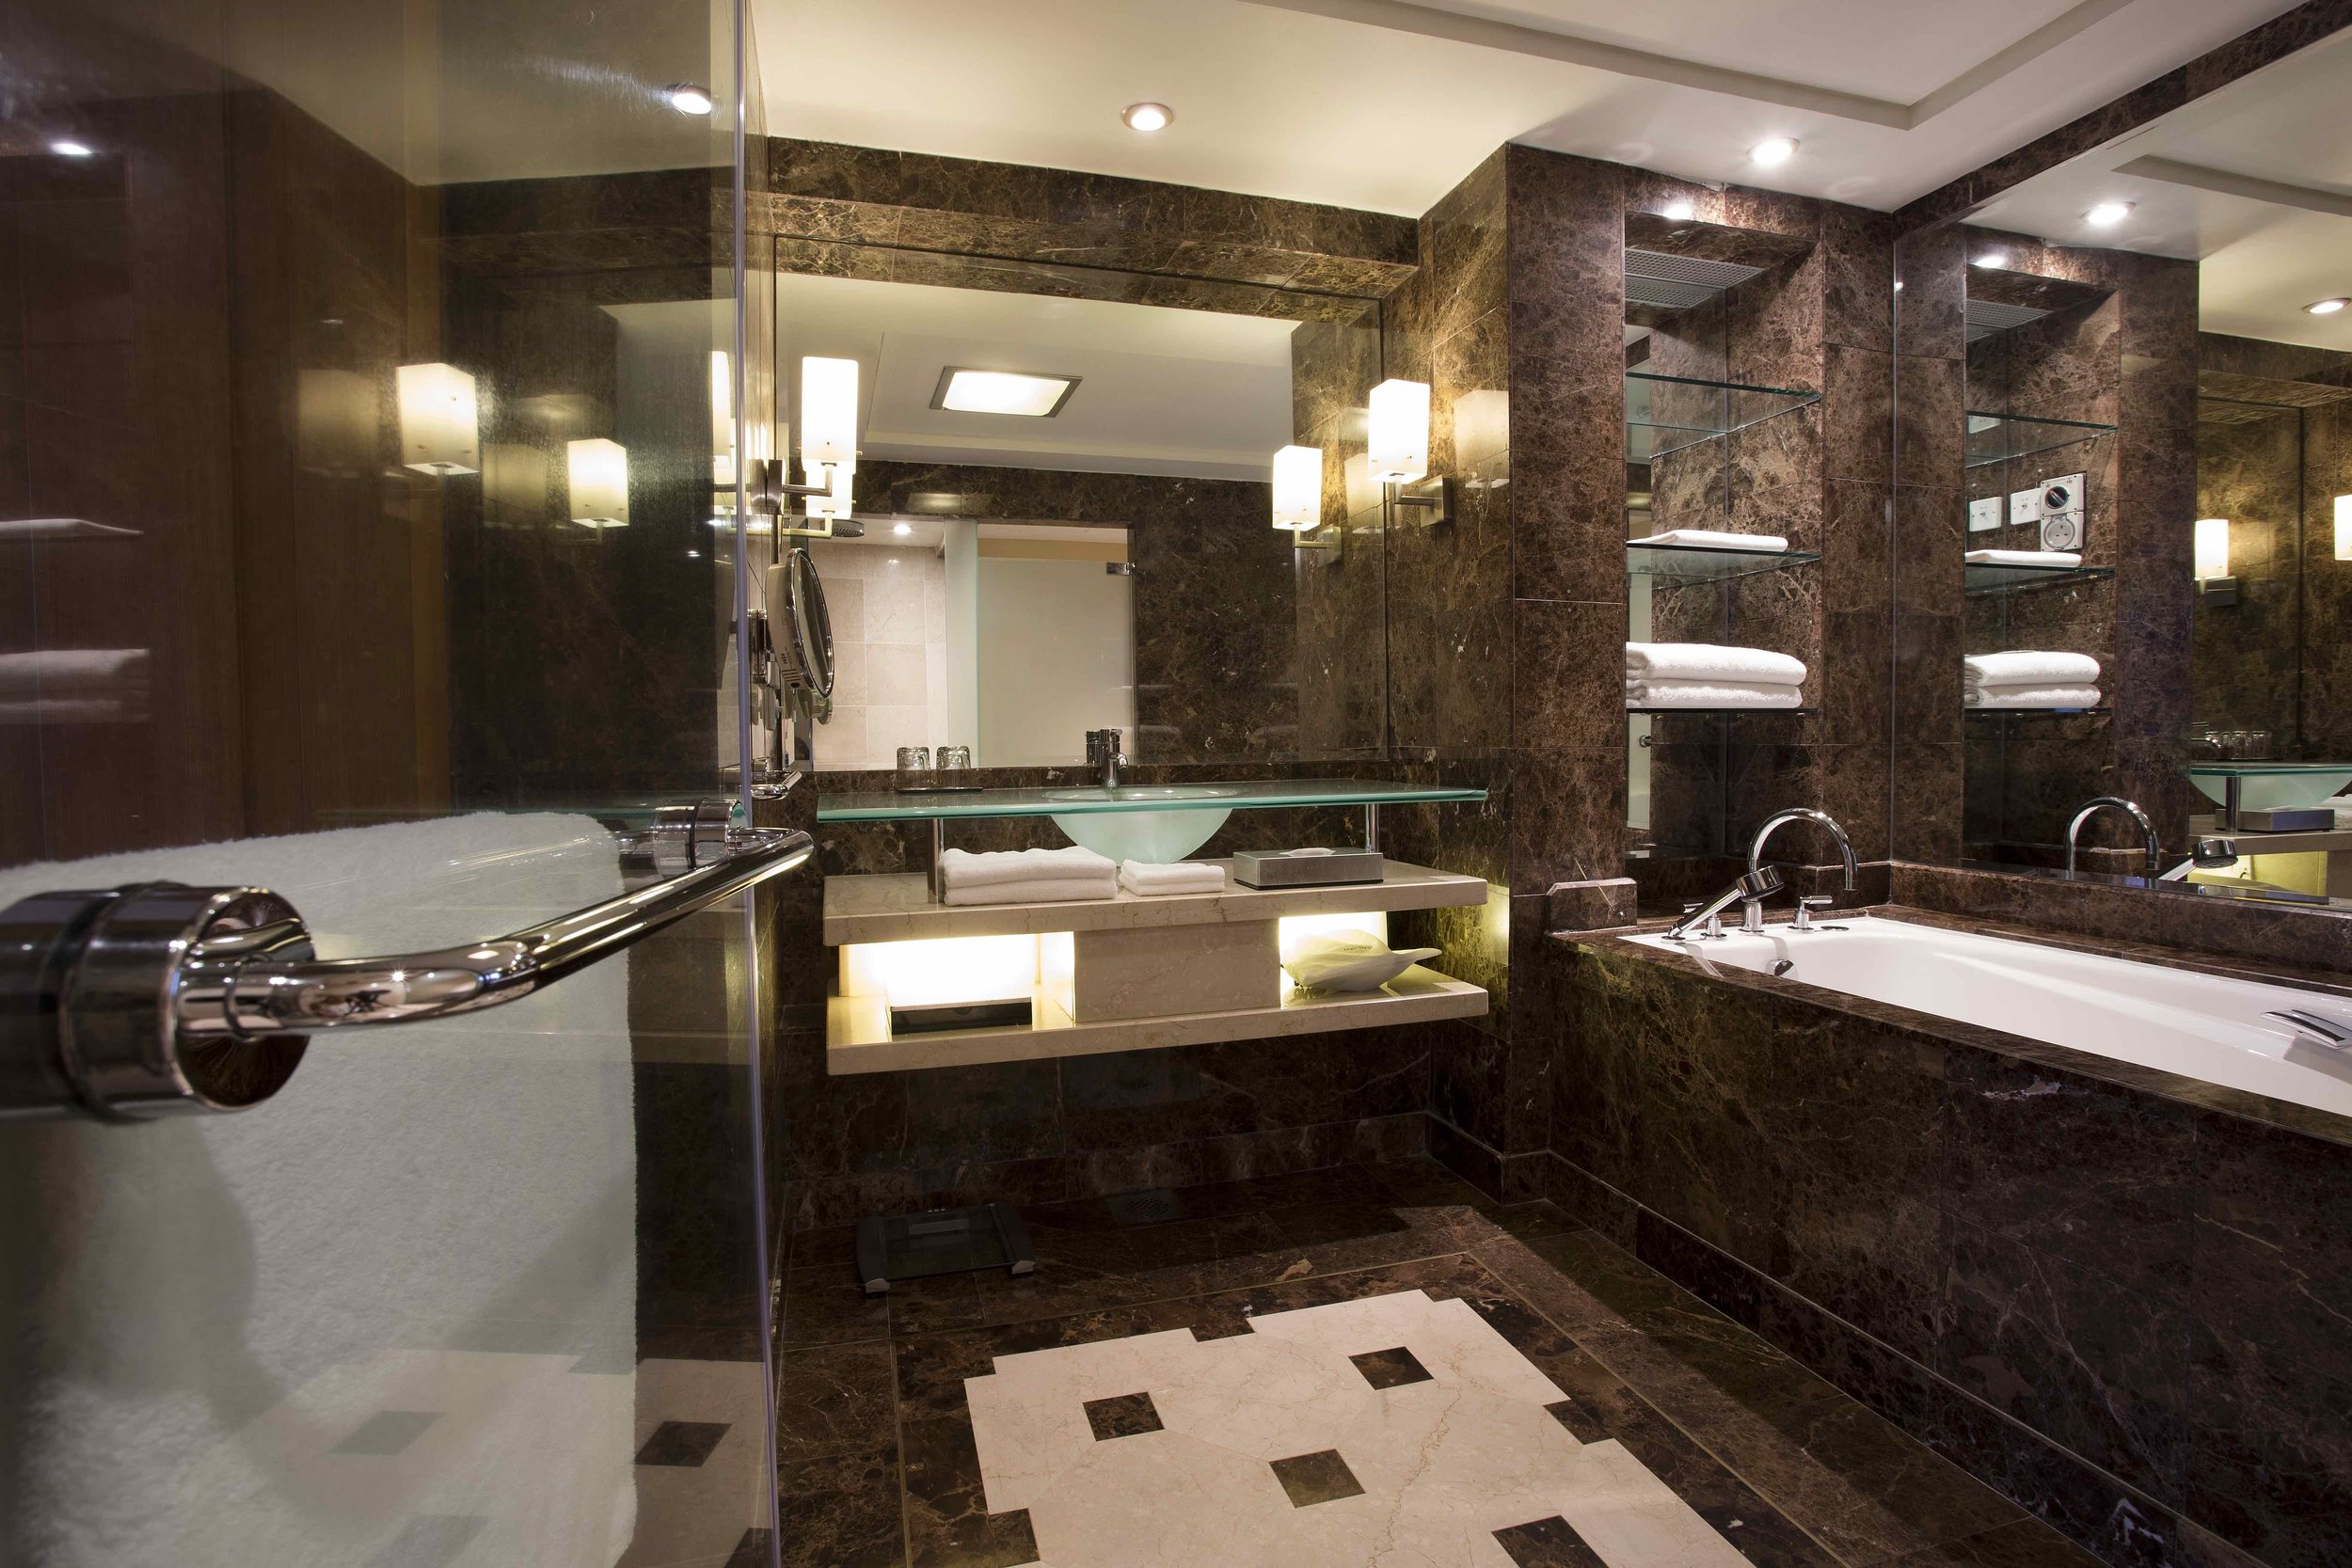 Grand Deluxe Room Bathroom.jpeg